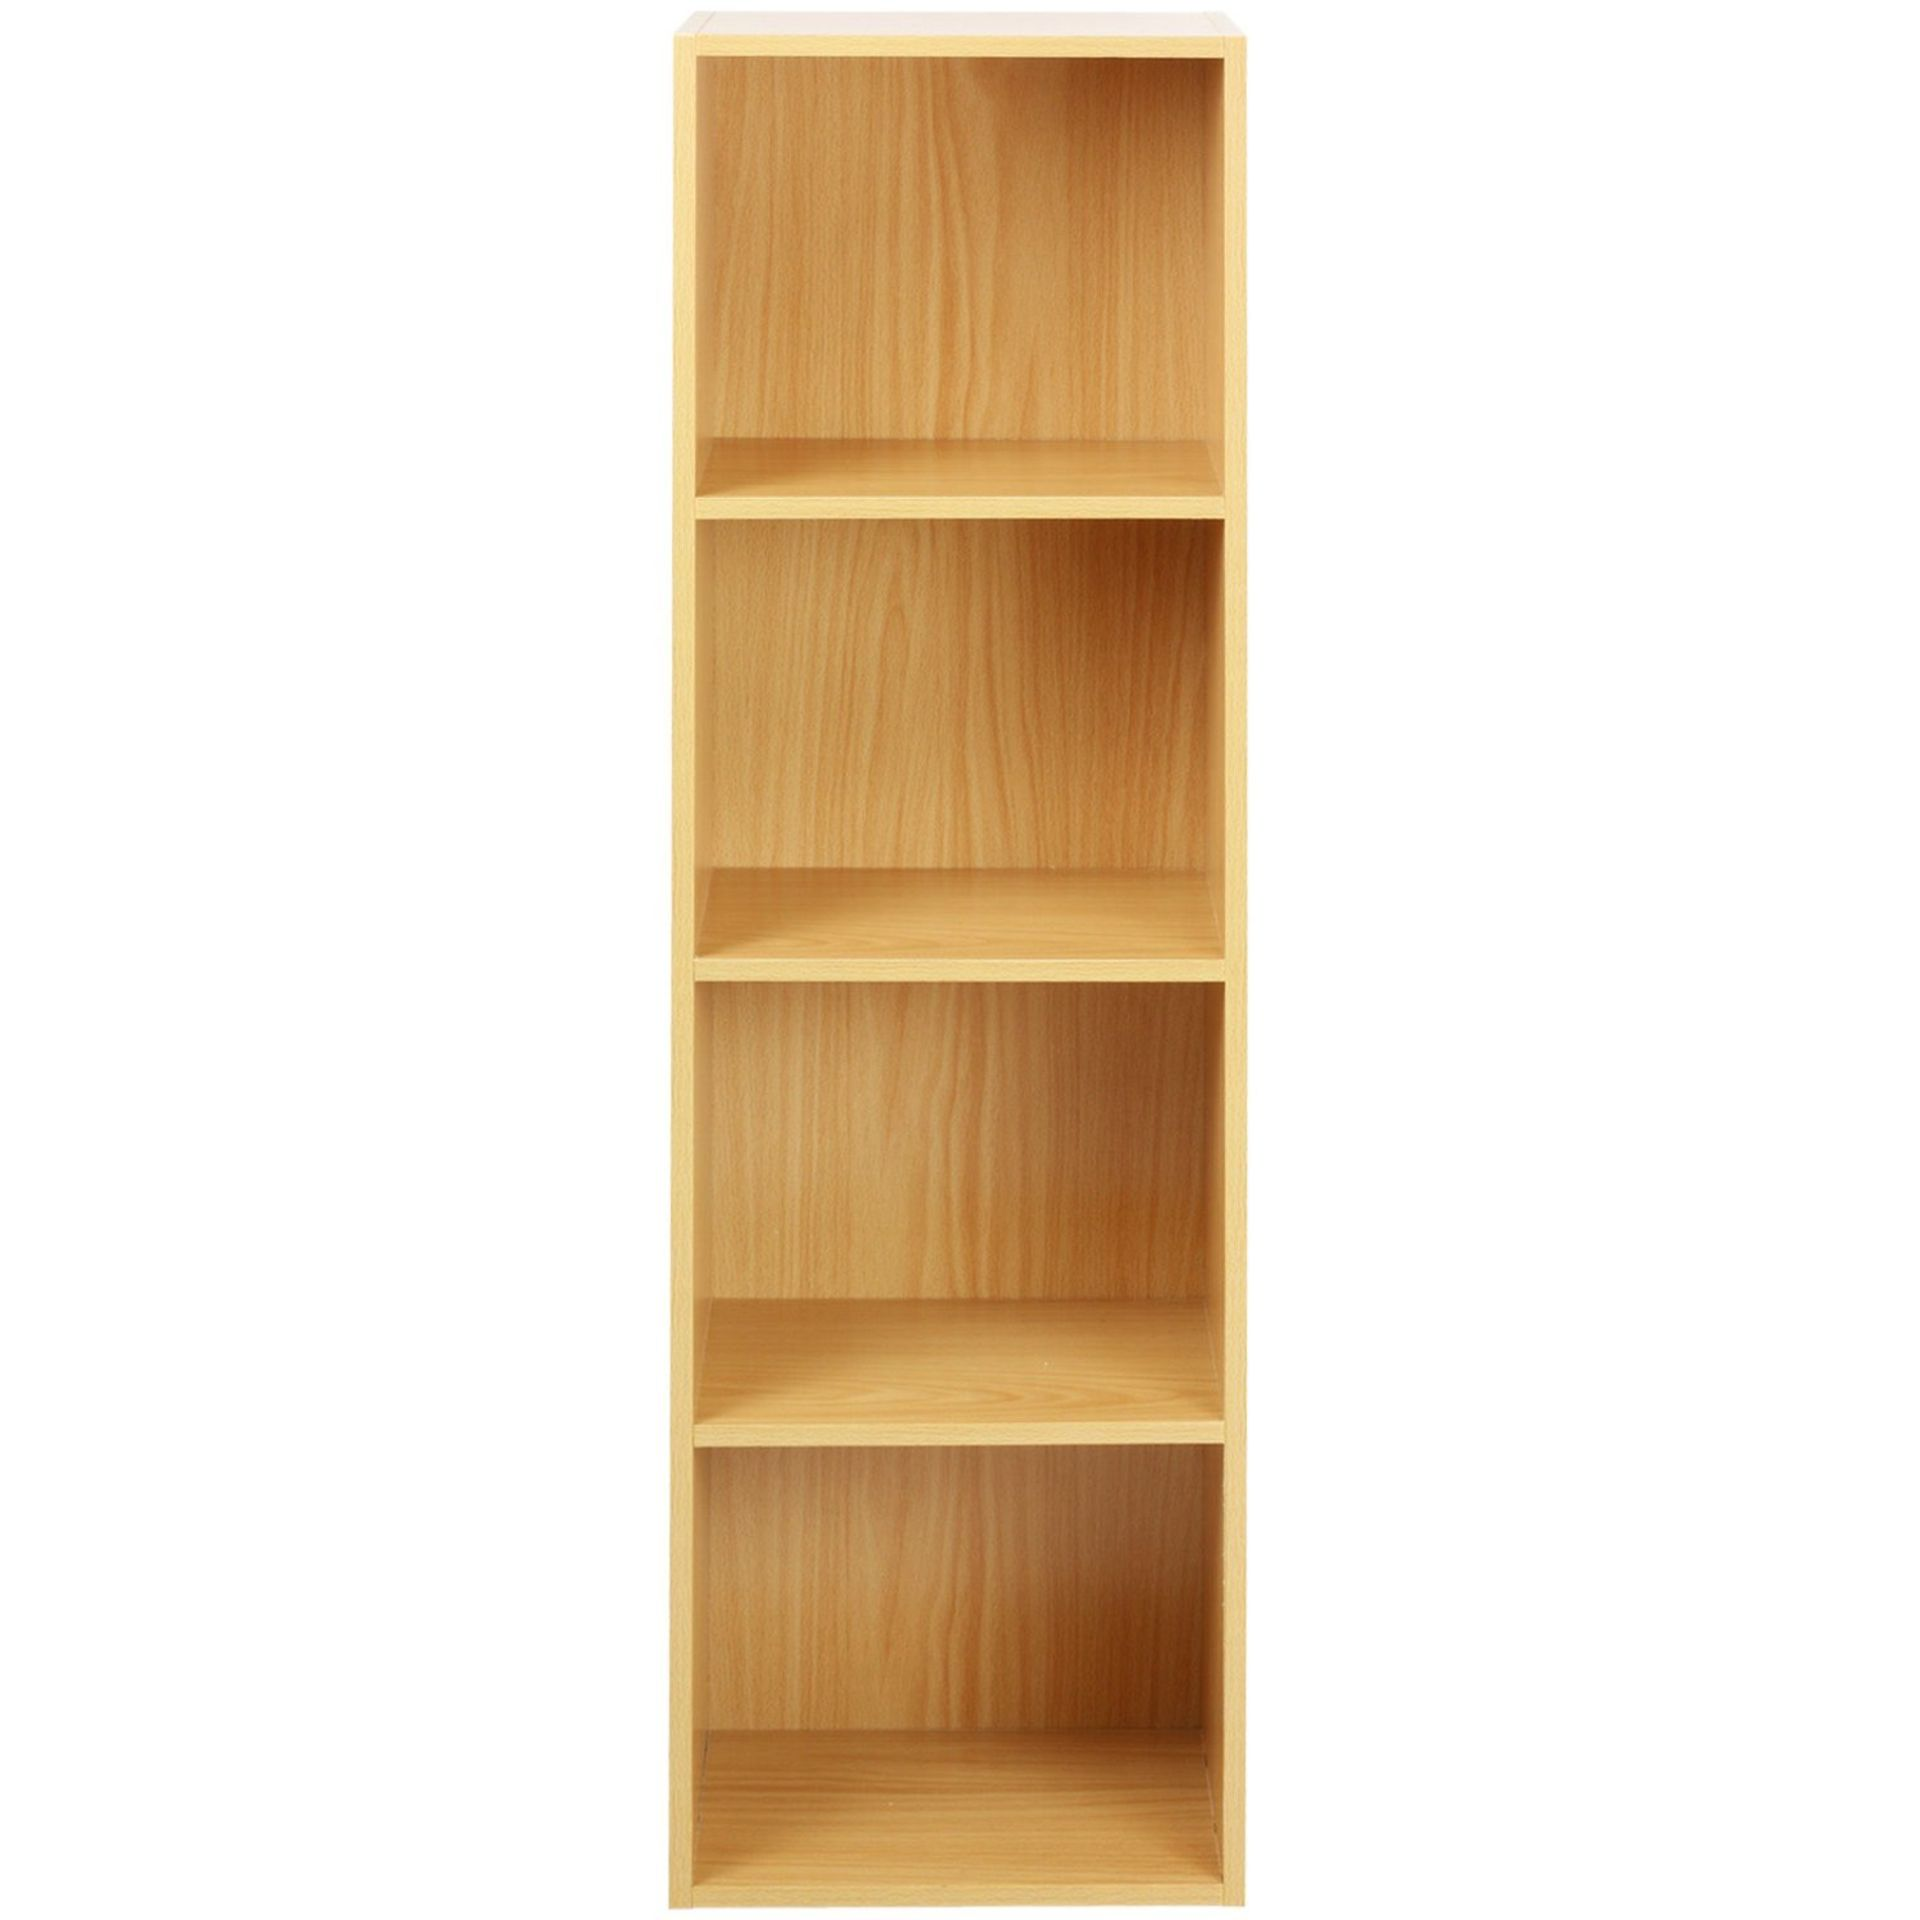 Lot 29 - (RU21) 4 Tier Wooden Shelf Beech Bookcase Shelving Storage Display Rack Compact, practical a...